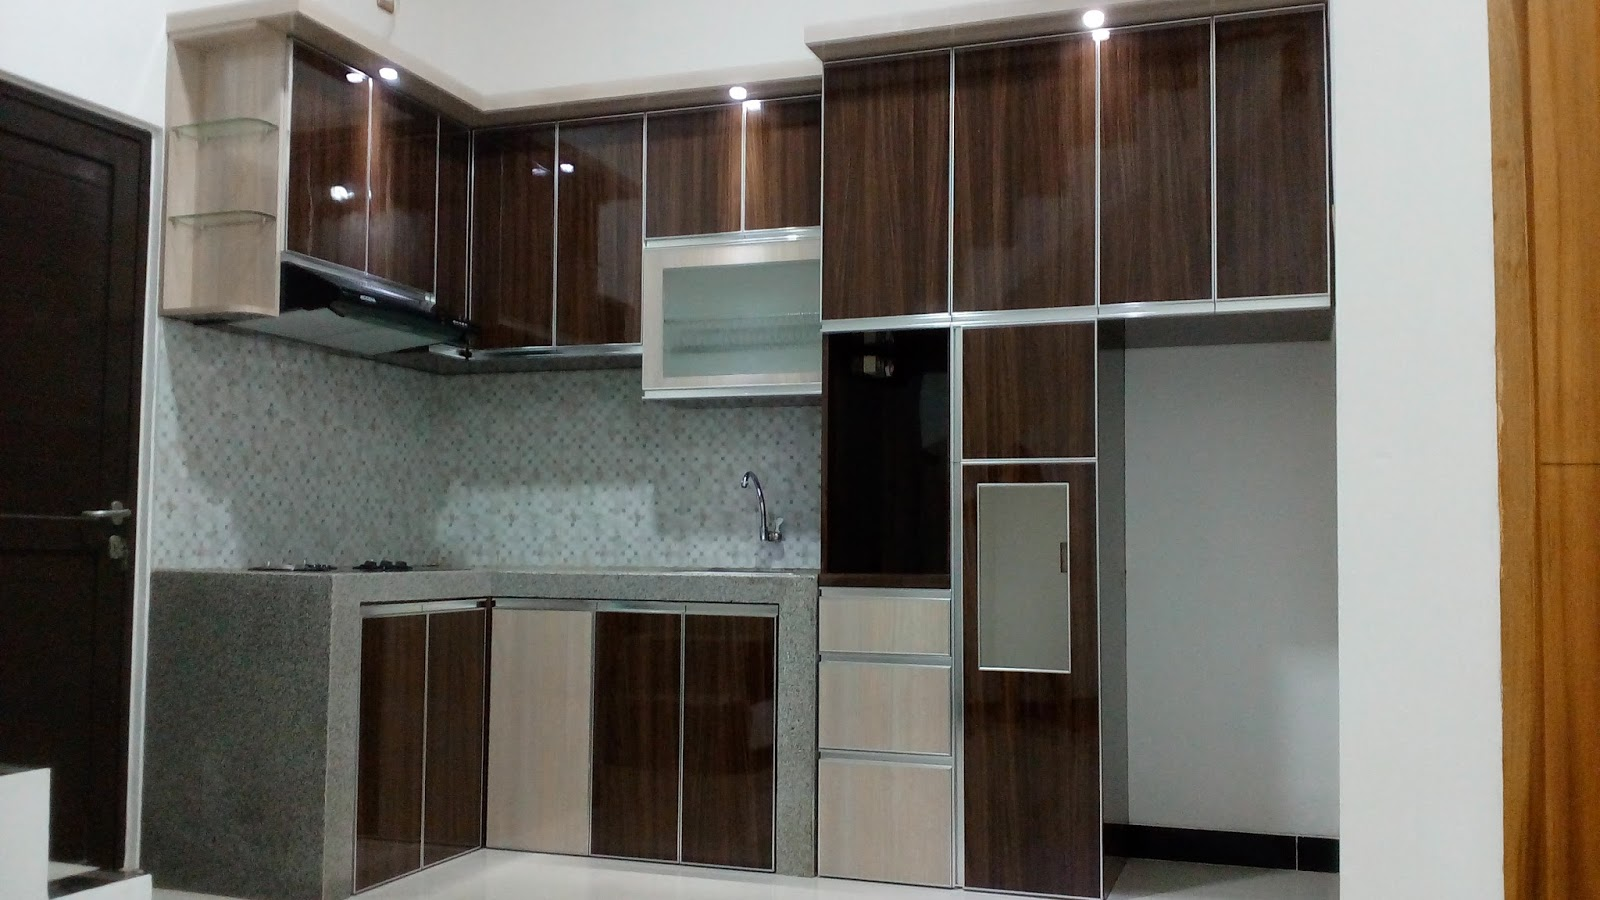 Contoh kitcheset for Pemasangan kitchen set